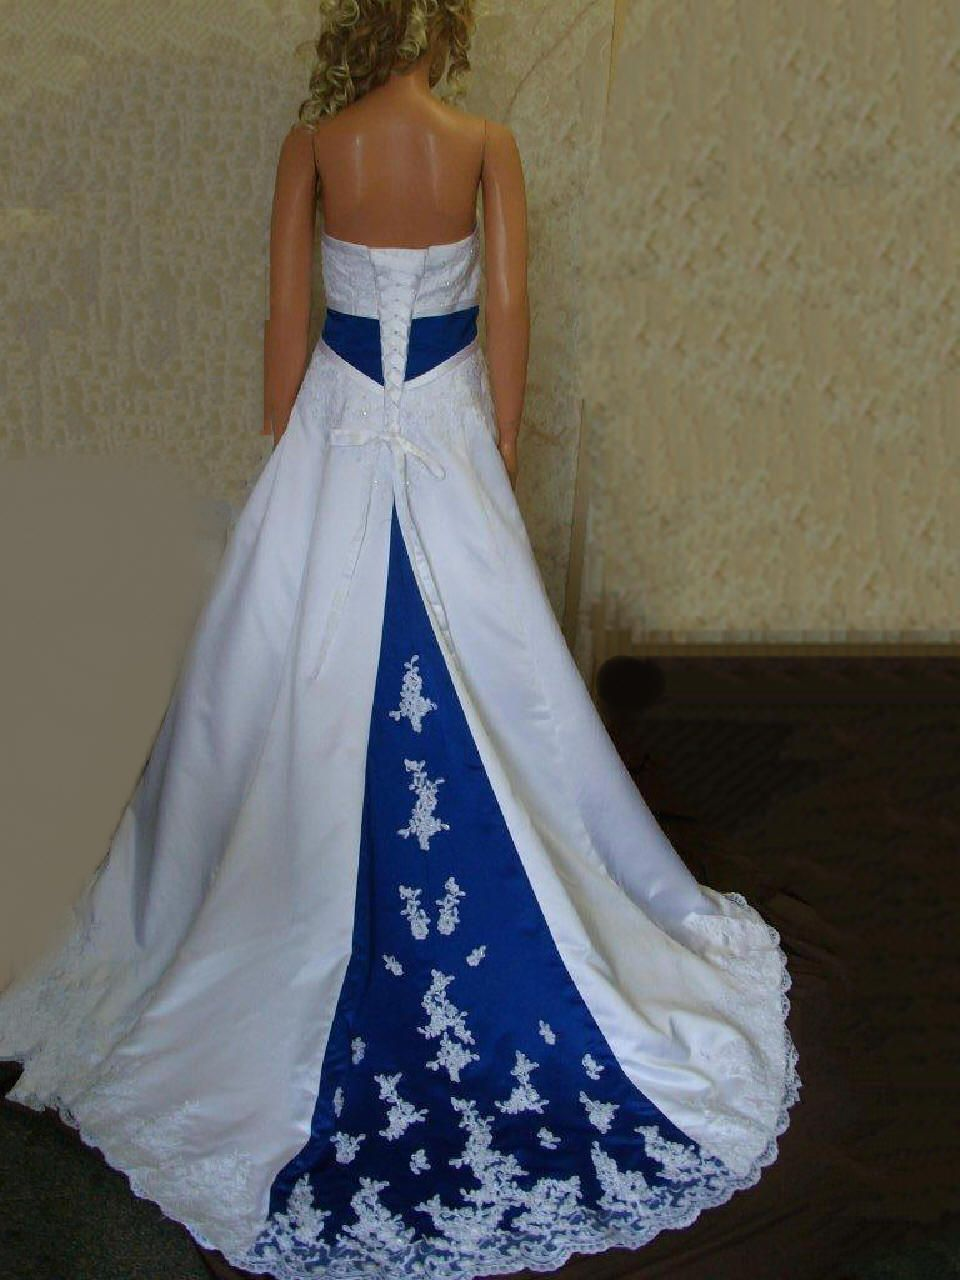 Blue wedding dresses wedding gown royal blue for Blue wedding dress with sleeves